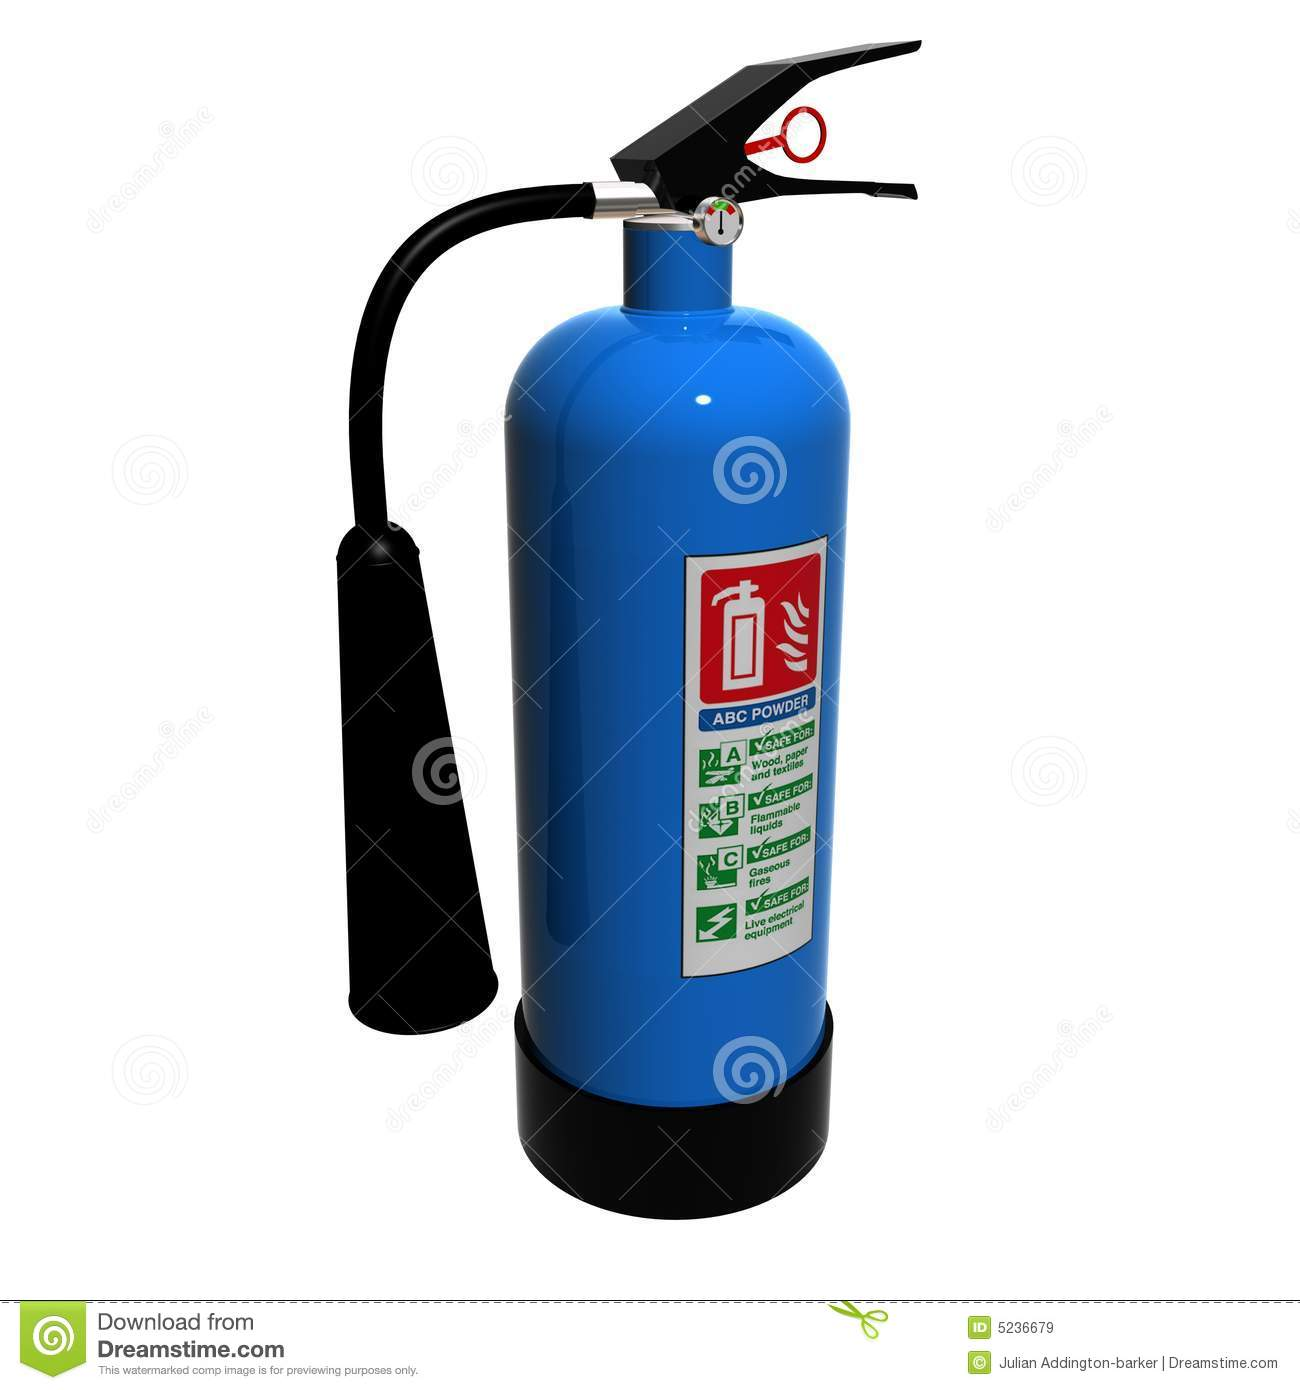 Abc Powder Fire Extinguisher Royalty Free Stock Images